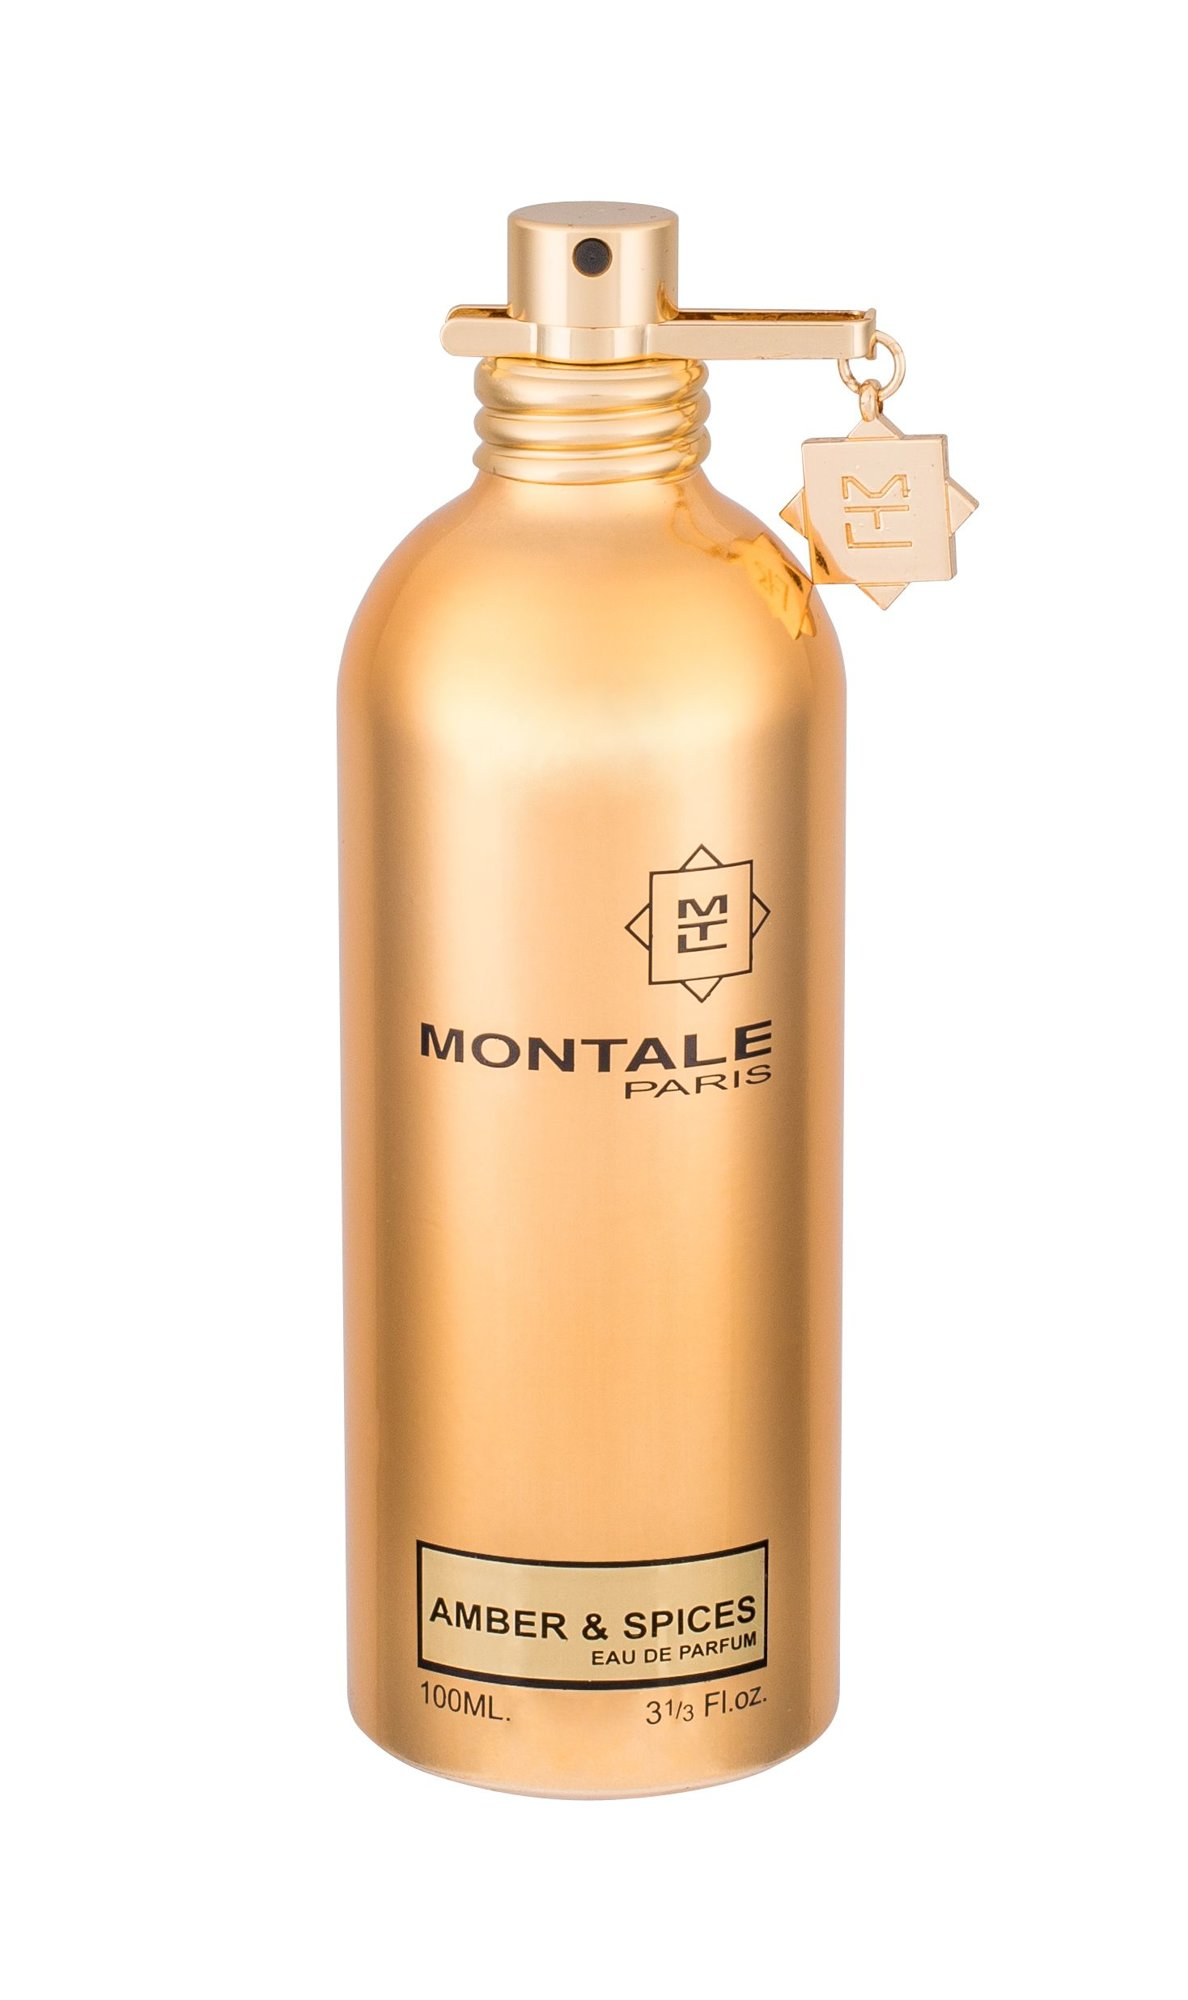 Montale Paris Amber & Spices EDP 100ml